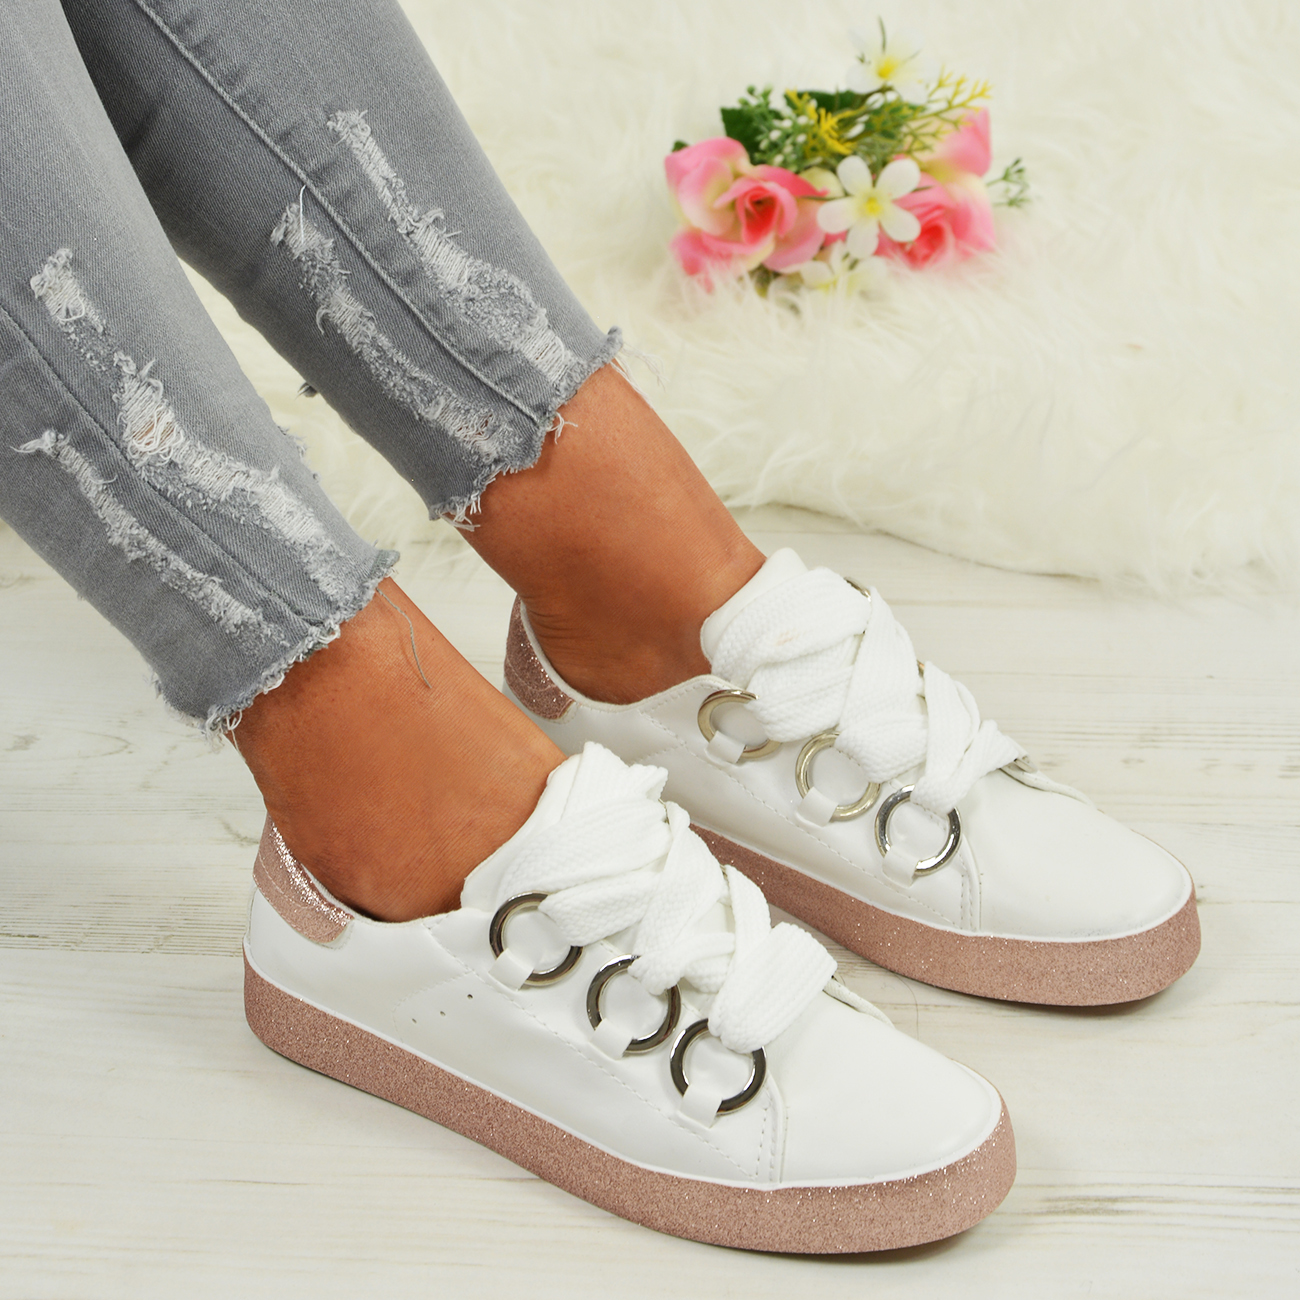 LADIES-WOMENS-GLITTER-SNEAKERS-SPARKLE-TRAINERS-LACE-UP-PLIMSOLL-PUMPS-SHOES thumbnail 22